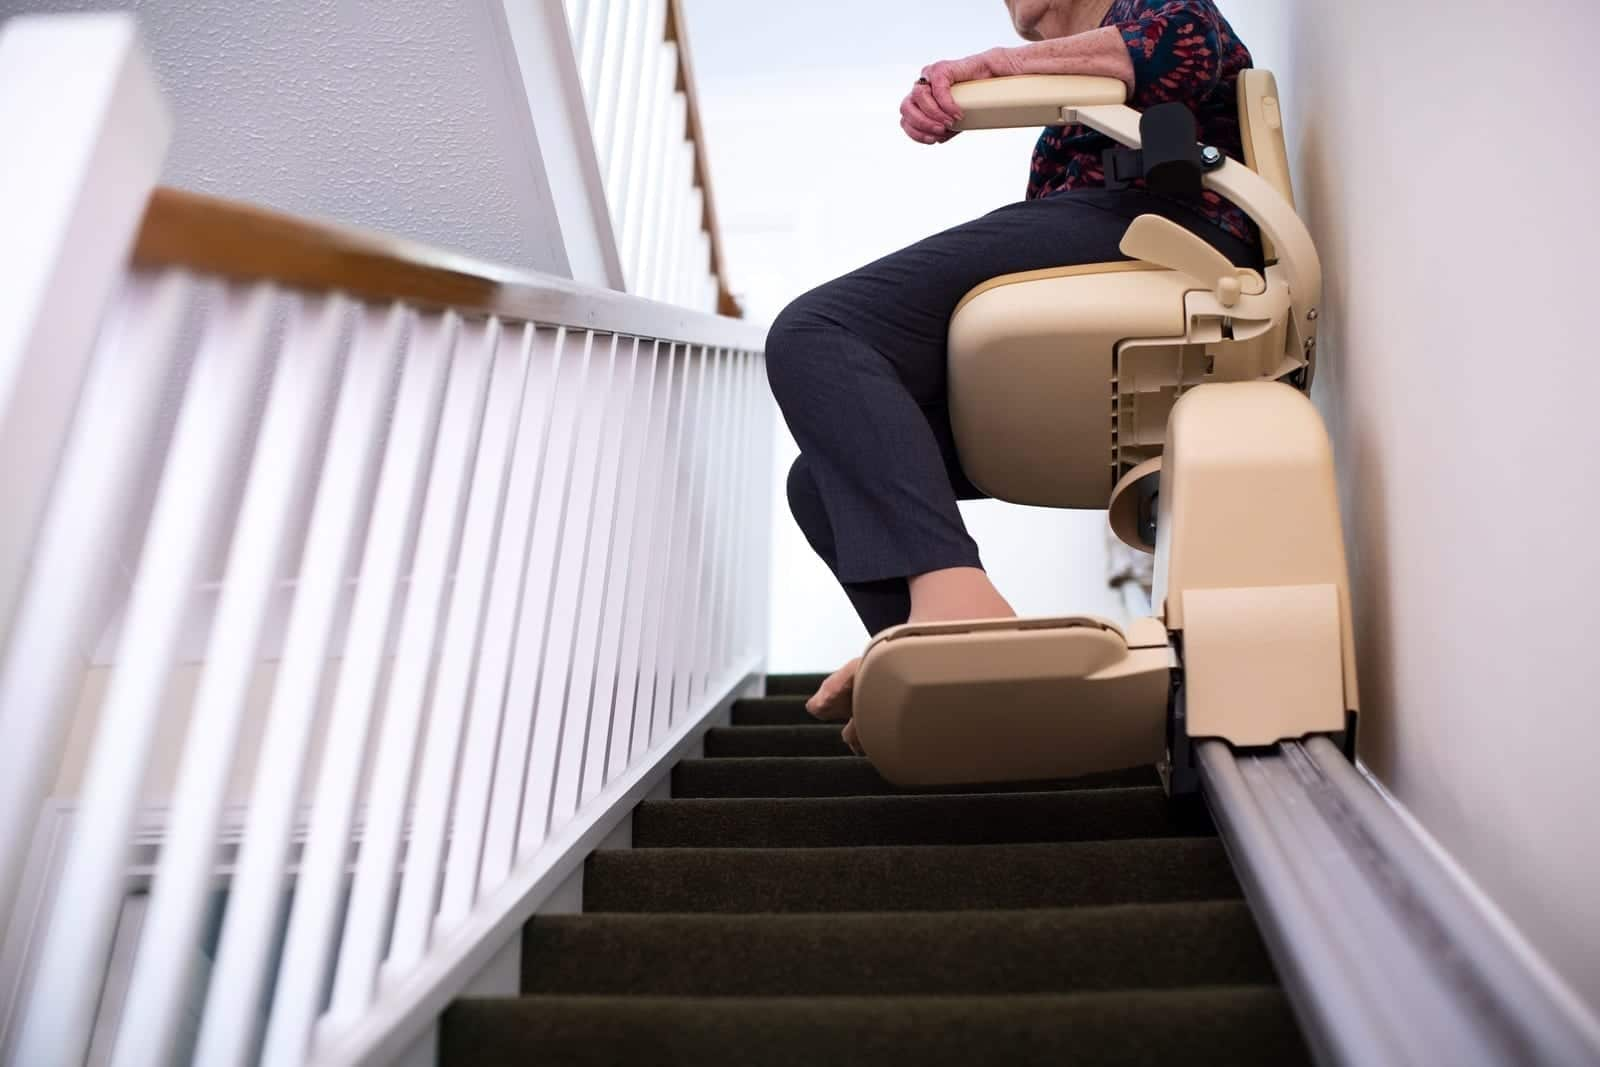 What factors should one consider when buying a stair lift?